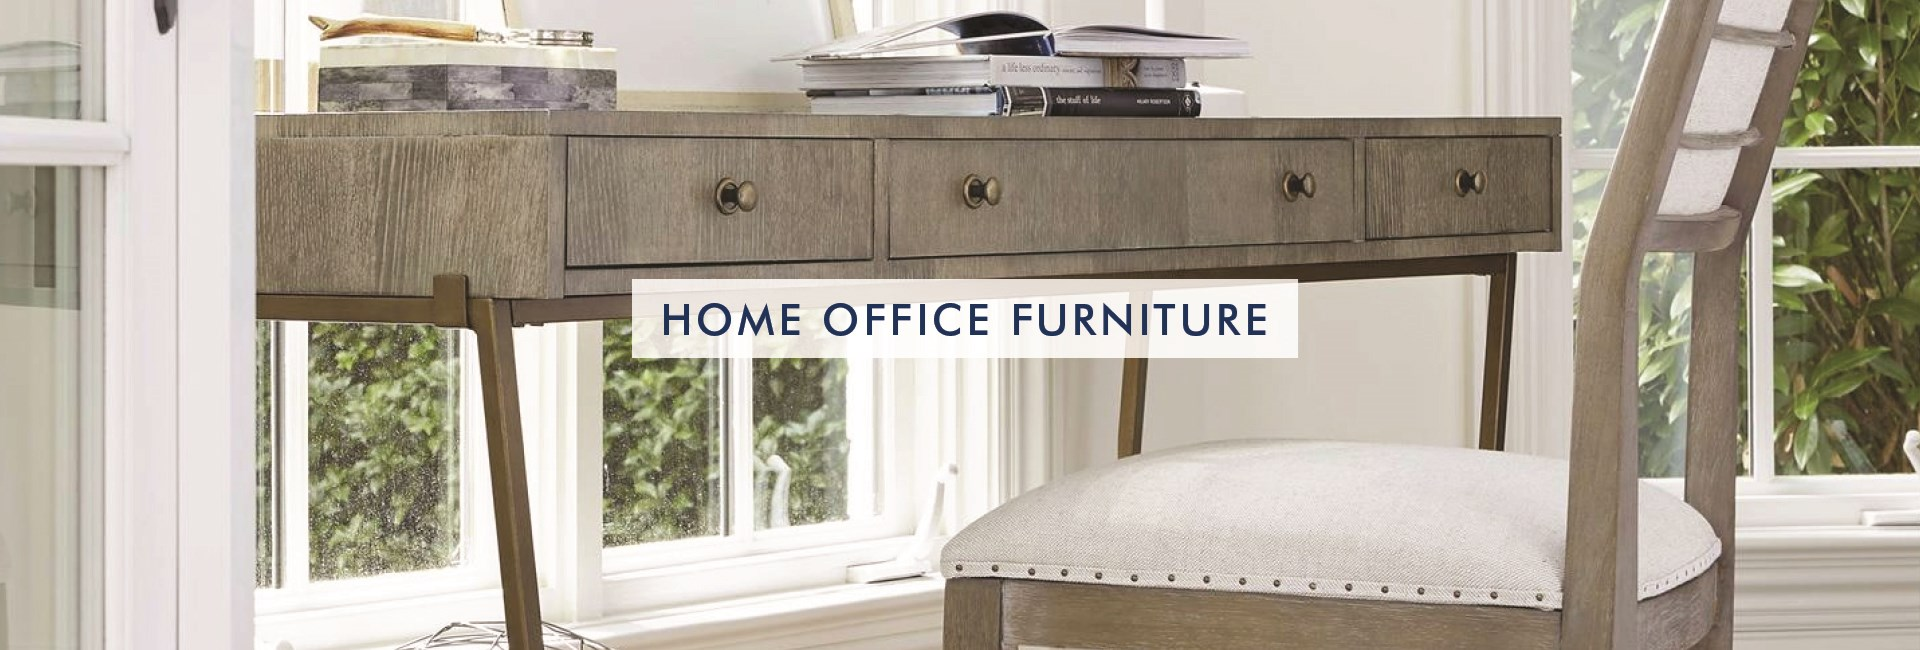 Shop Home Office Furniture  Beaumont, Port Arthur, Lake Charles